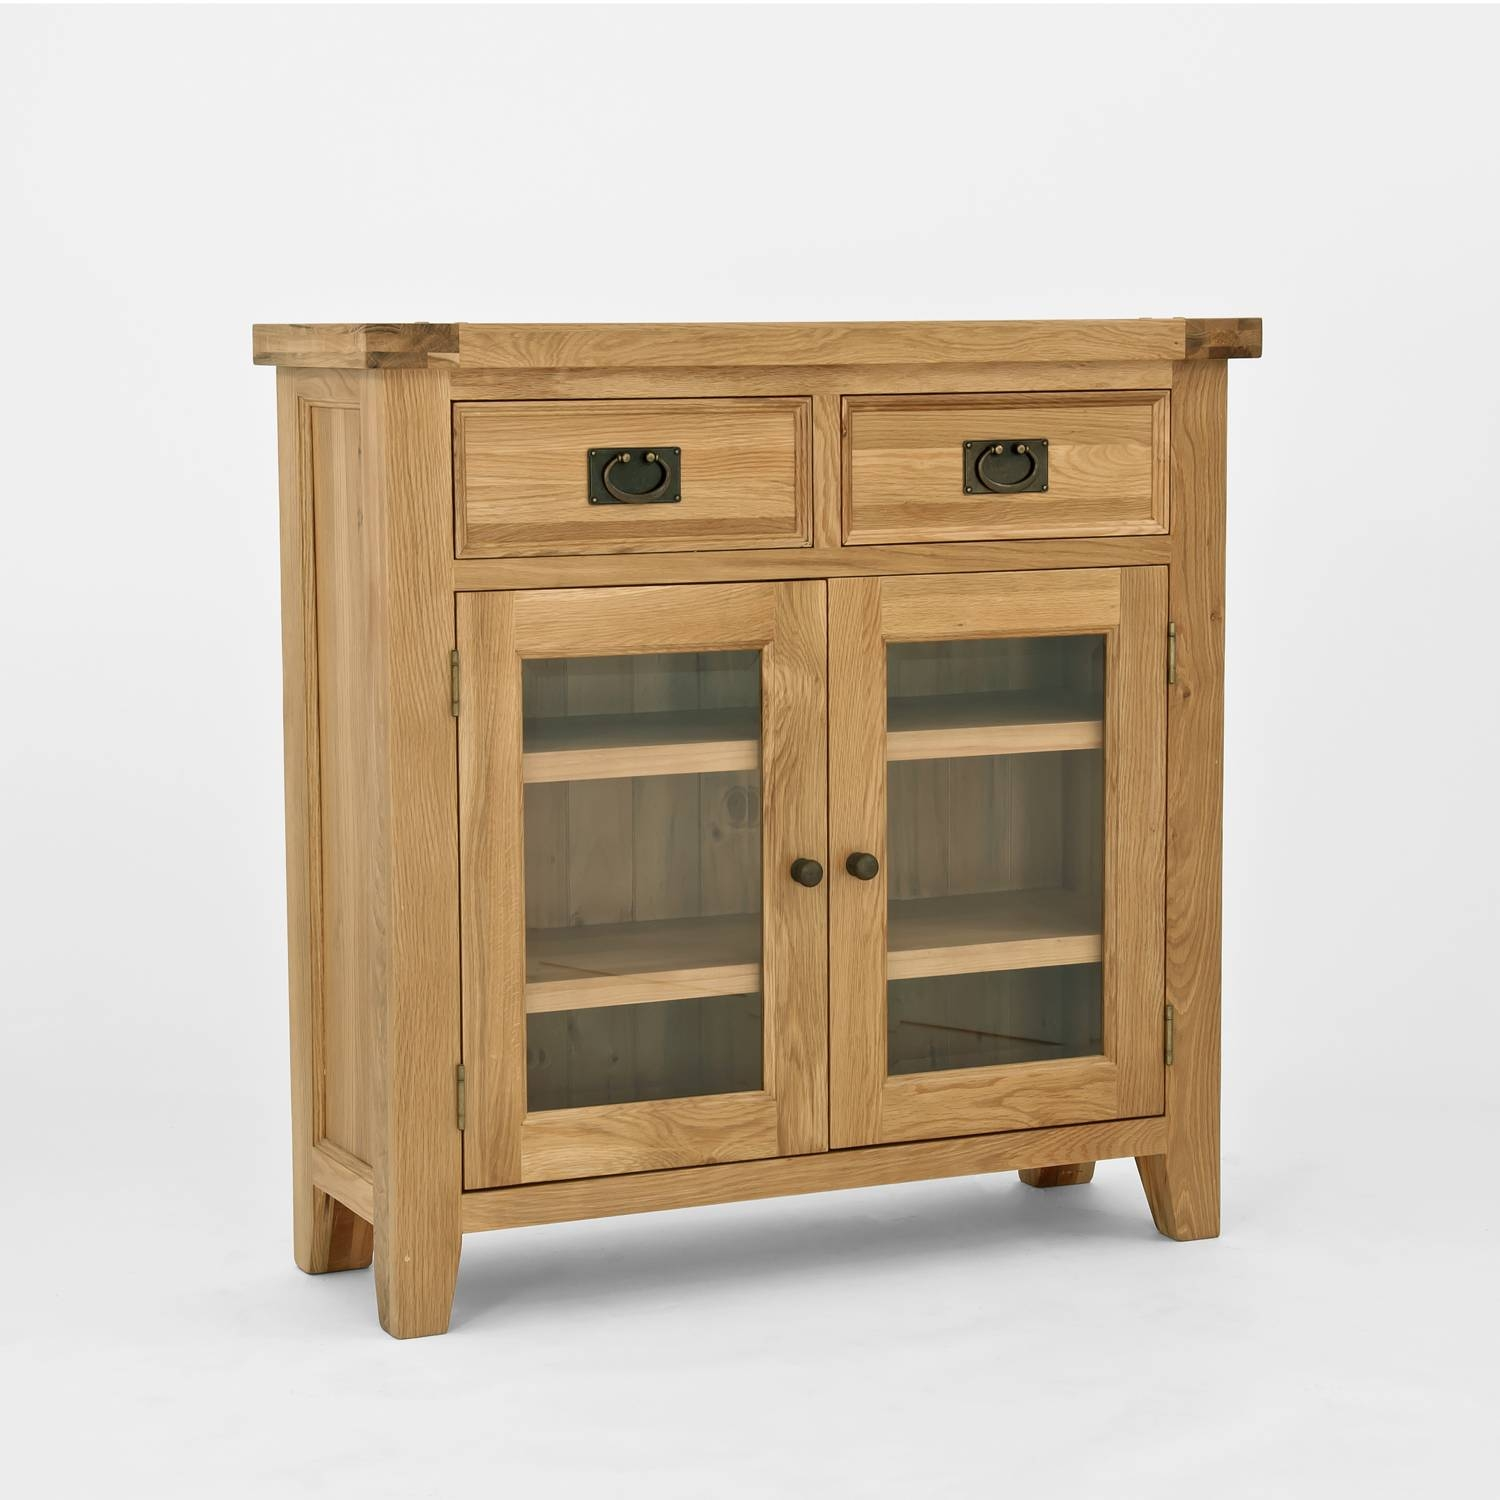 Chiltern Oak Small Sideboard/bookcase With Glass Doors Pertaining To Small Sideboard Cabinets (#4 of 15)